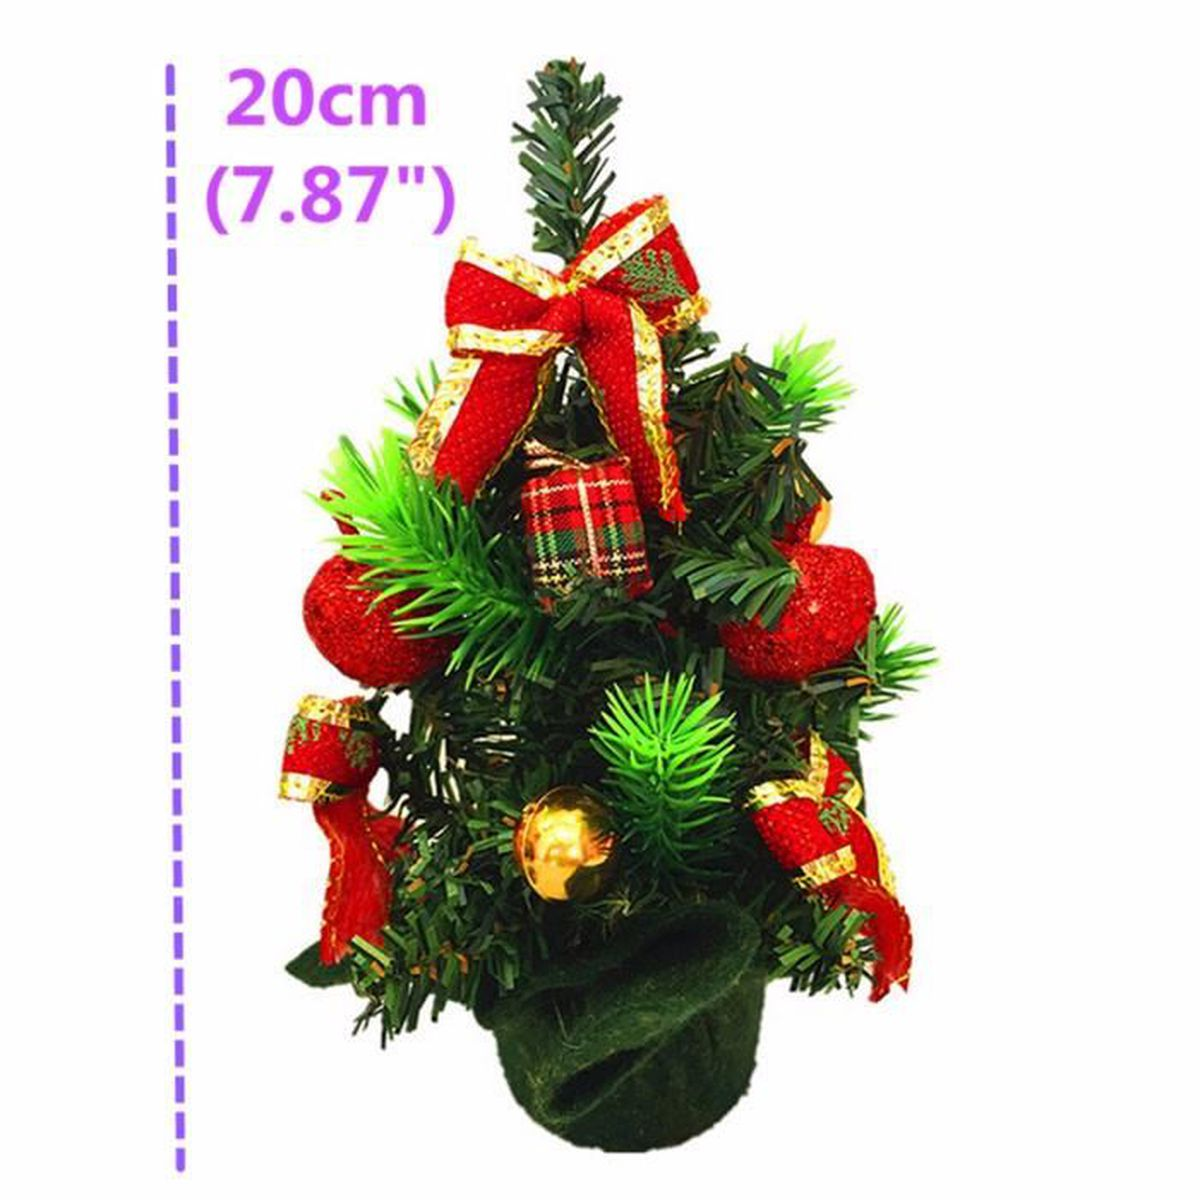 Mignon 20cm mini sapin de n el d coration cadeau d cor ornement table maison - Mini sapin de noel decore ...